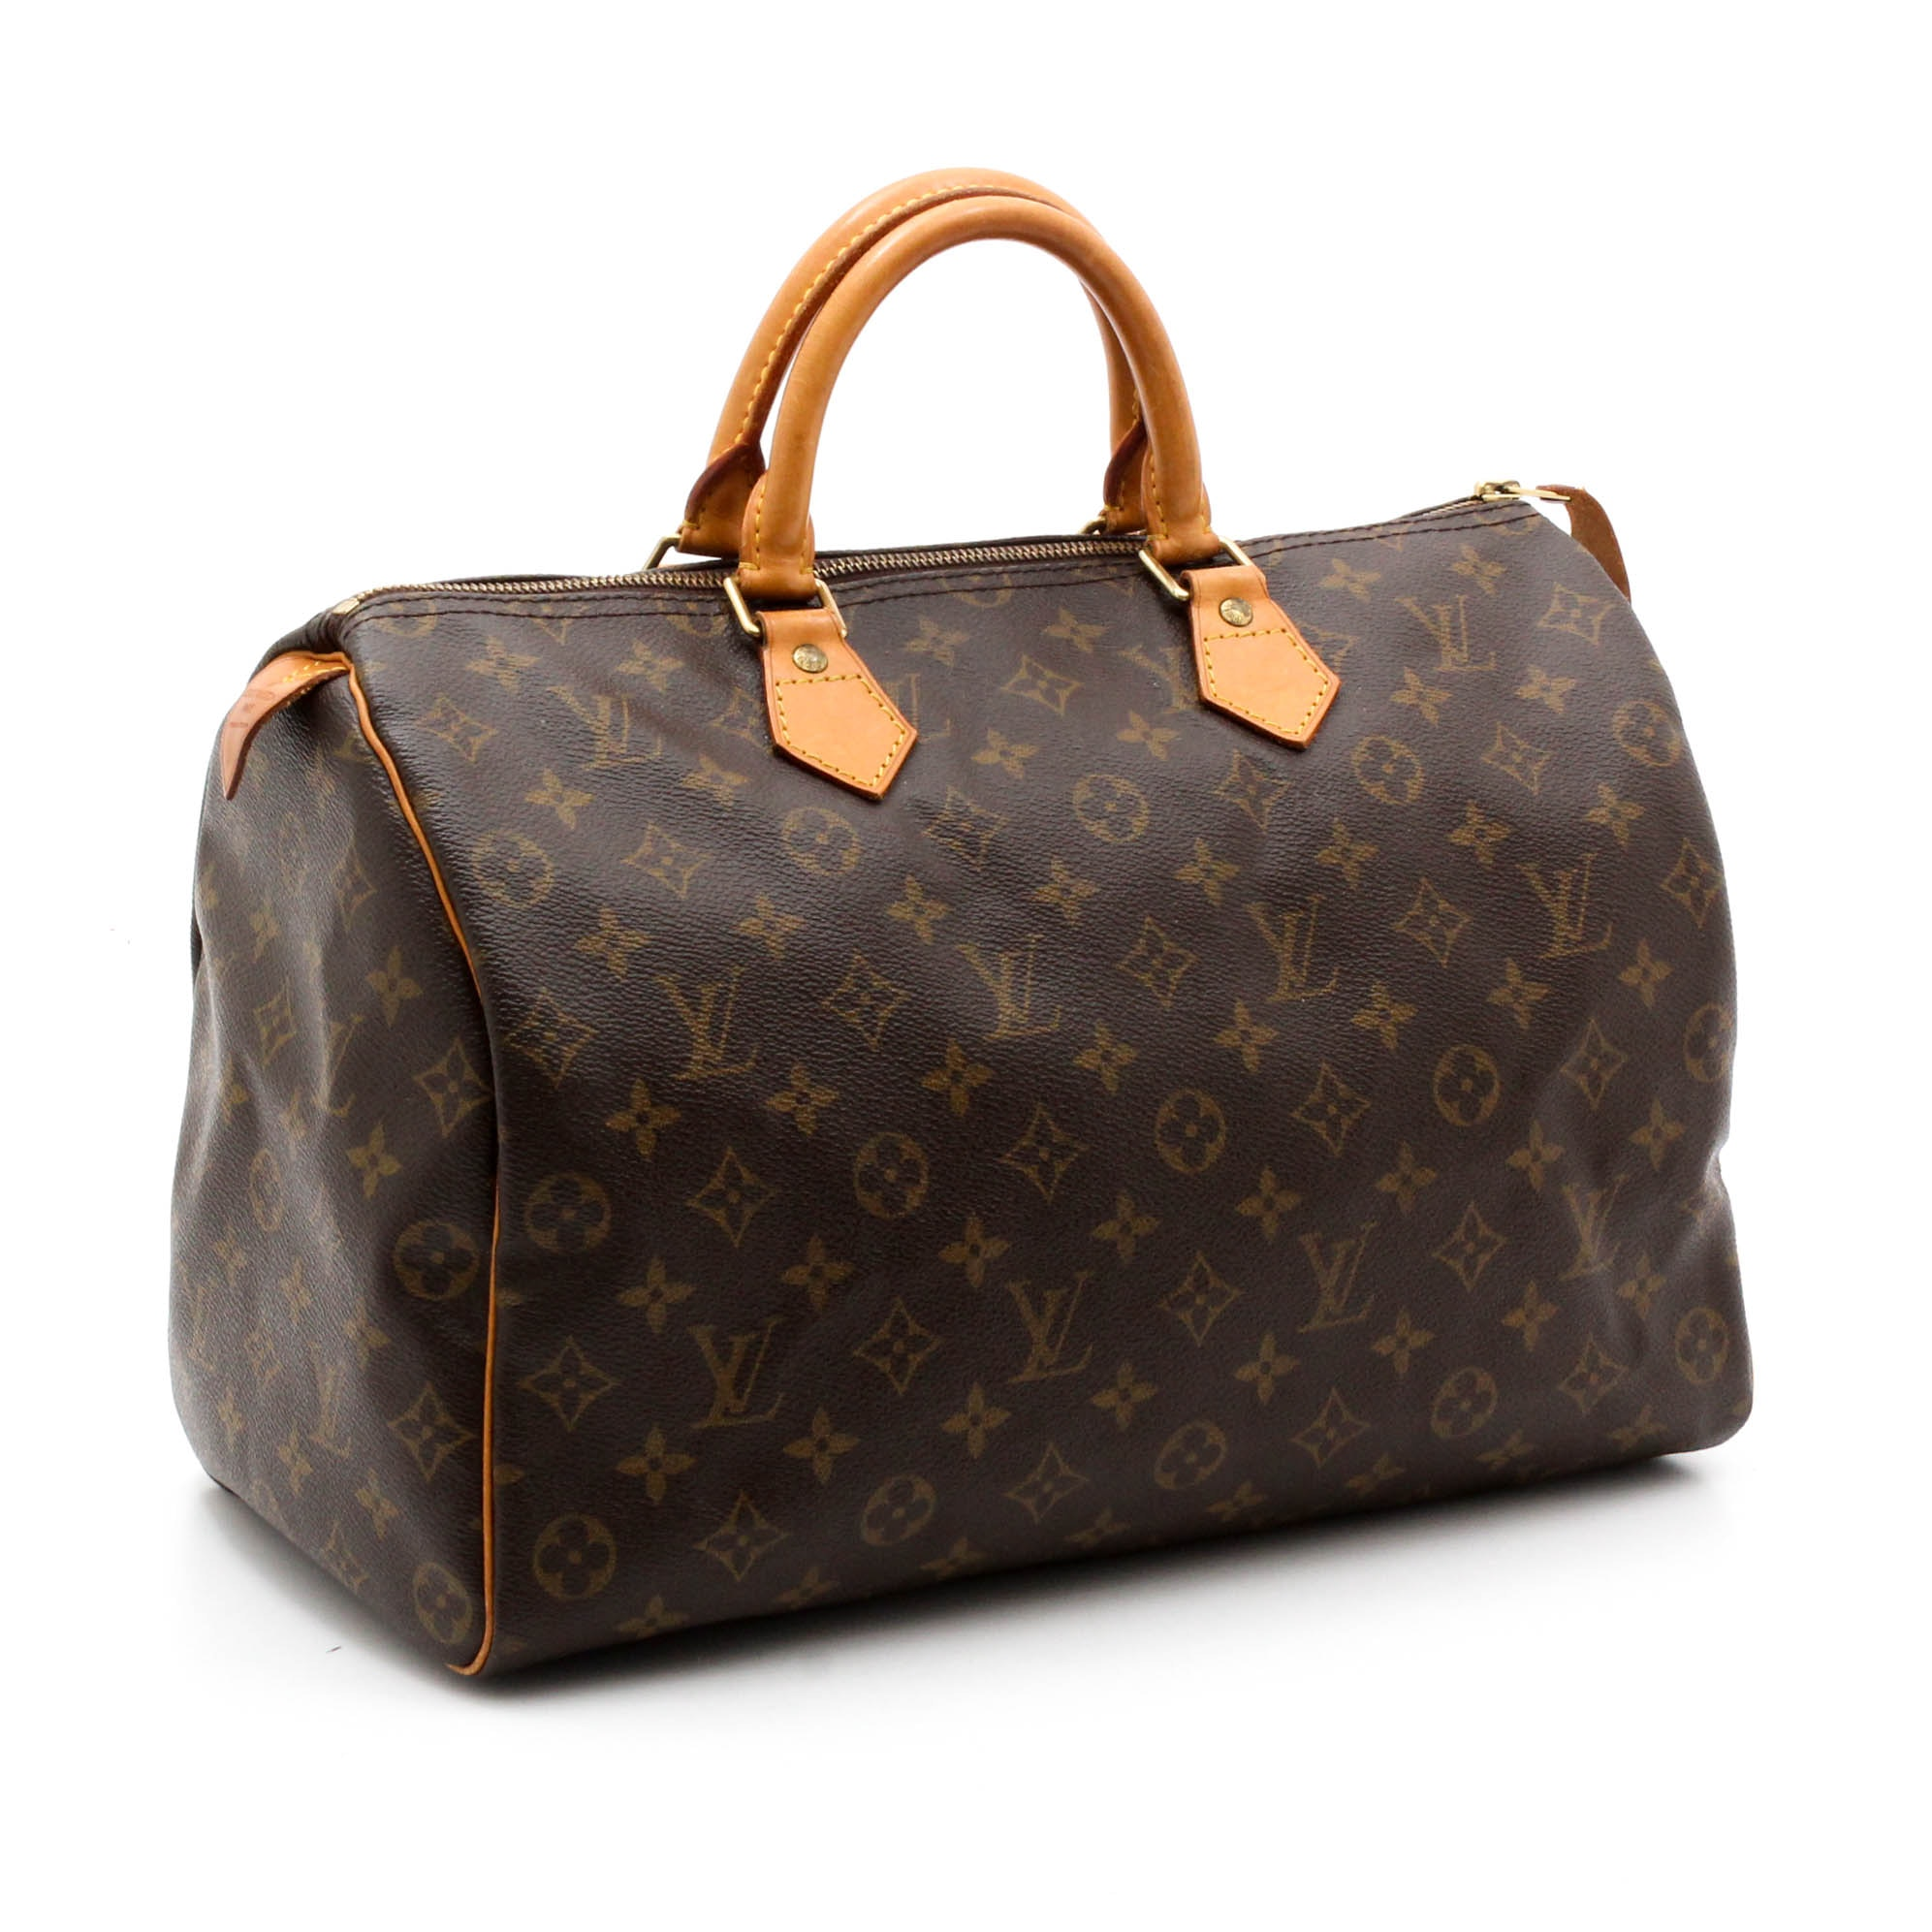 Louis Vuitton Monogram Canvas Speedy 40 Tote